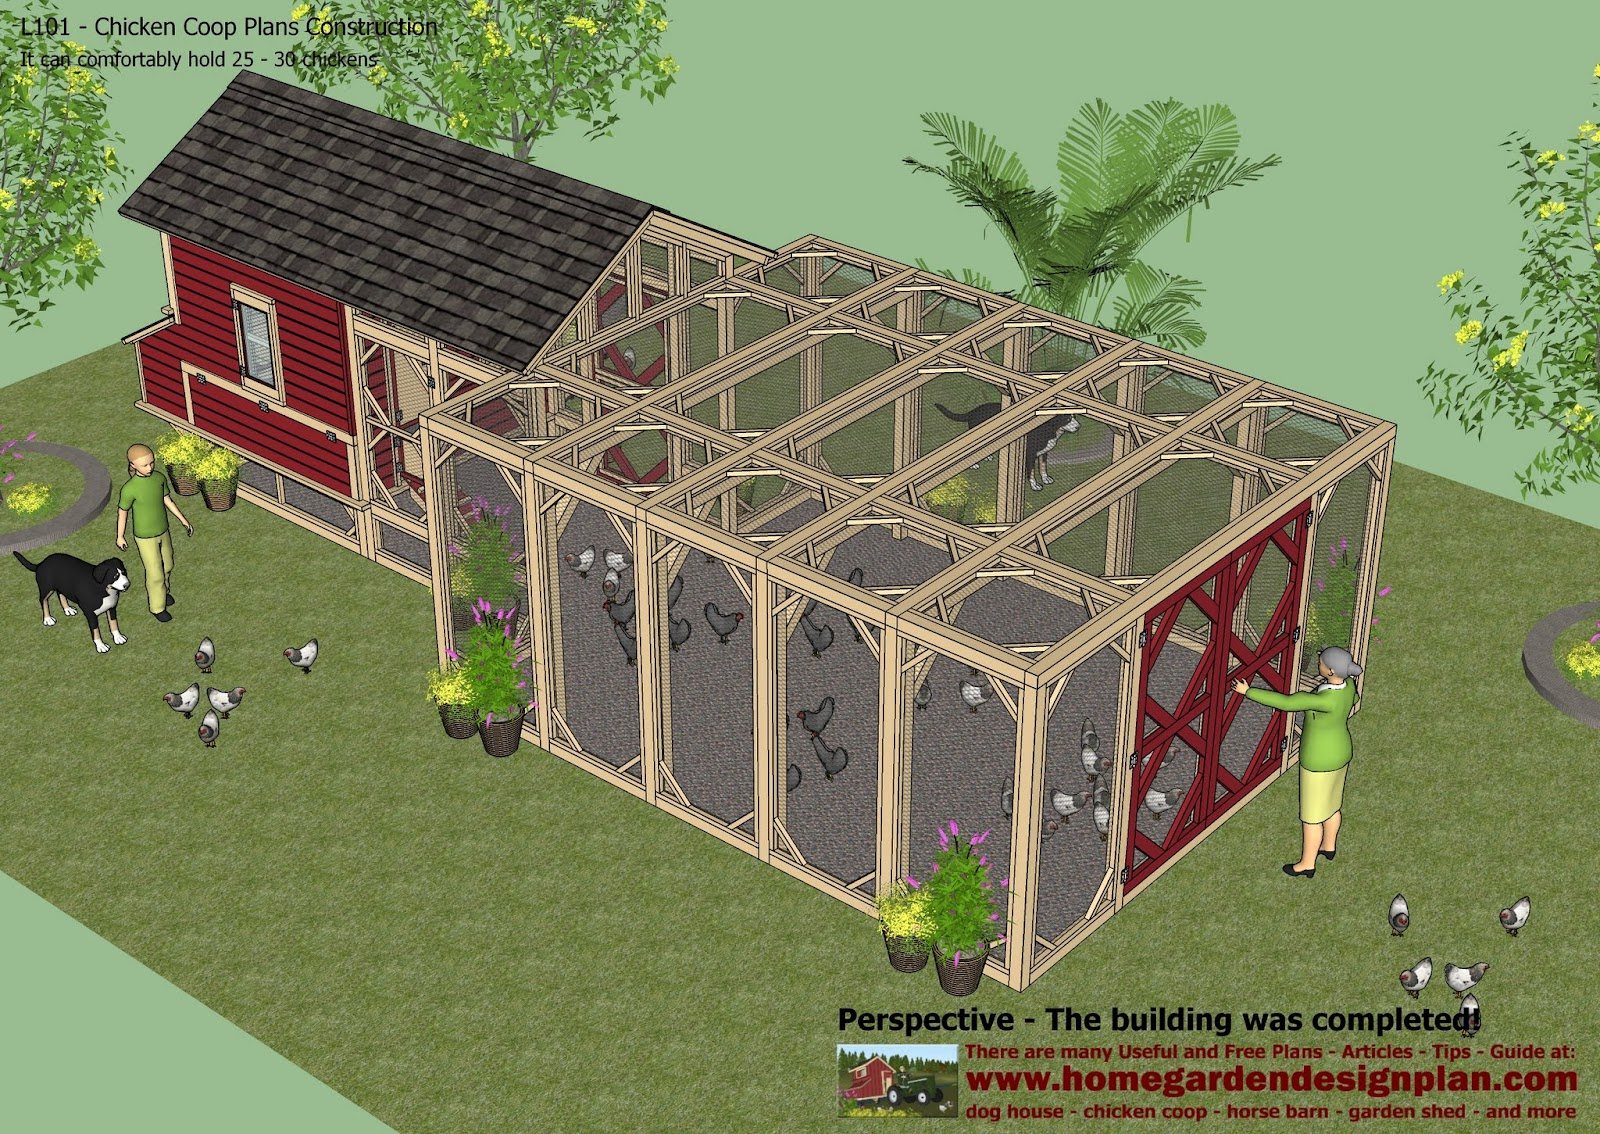 Home garden plans home garden plans l101 chicken coop for Garden in house designs